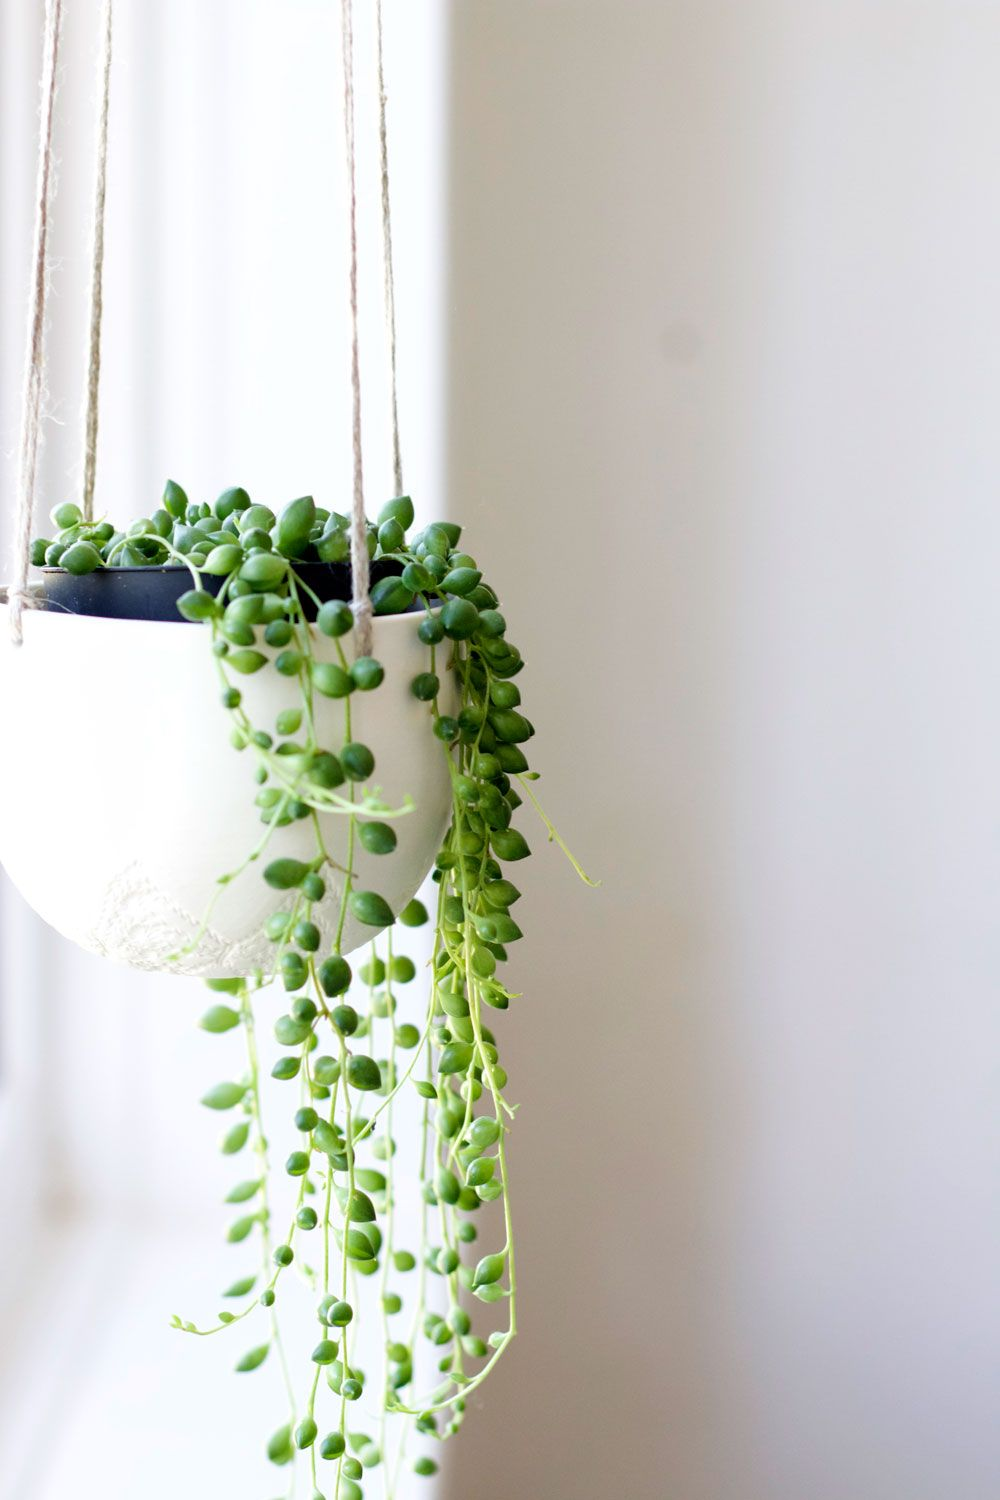 10 Hanging Plants That're Low-Maintenance for Beginner Gardeners